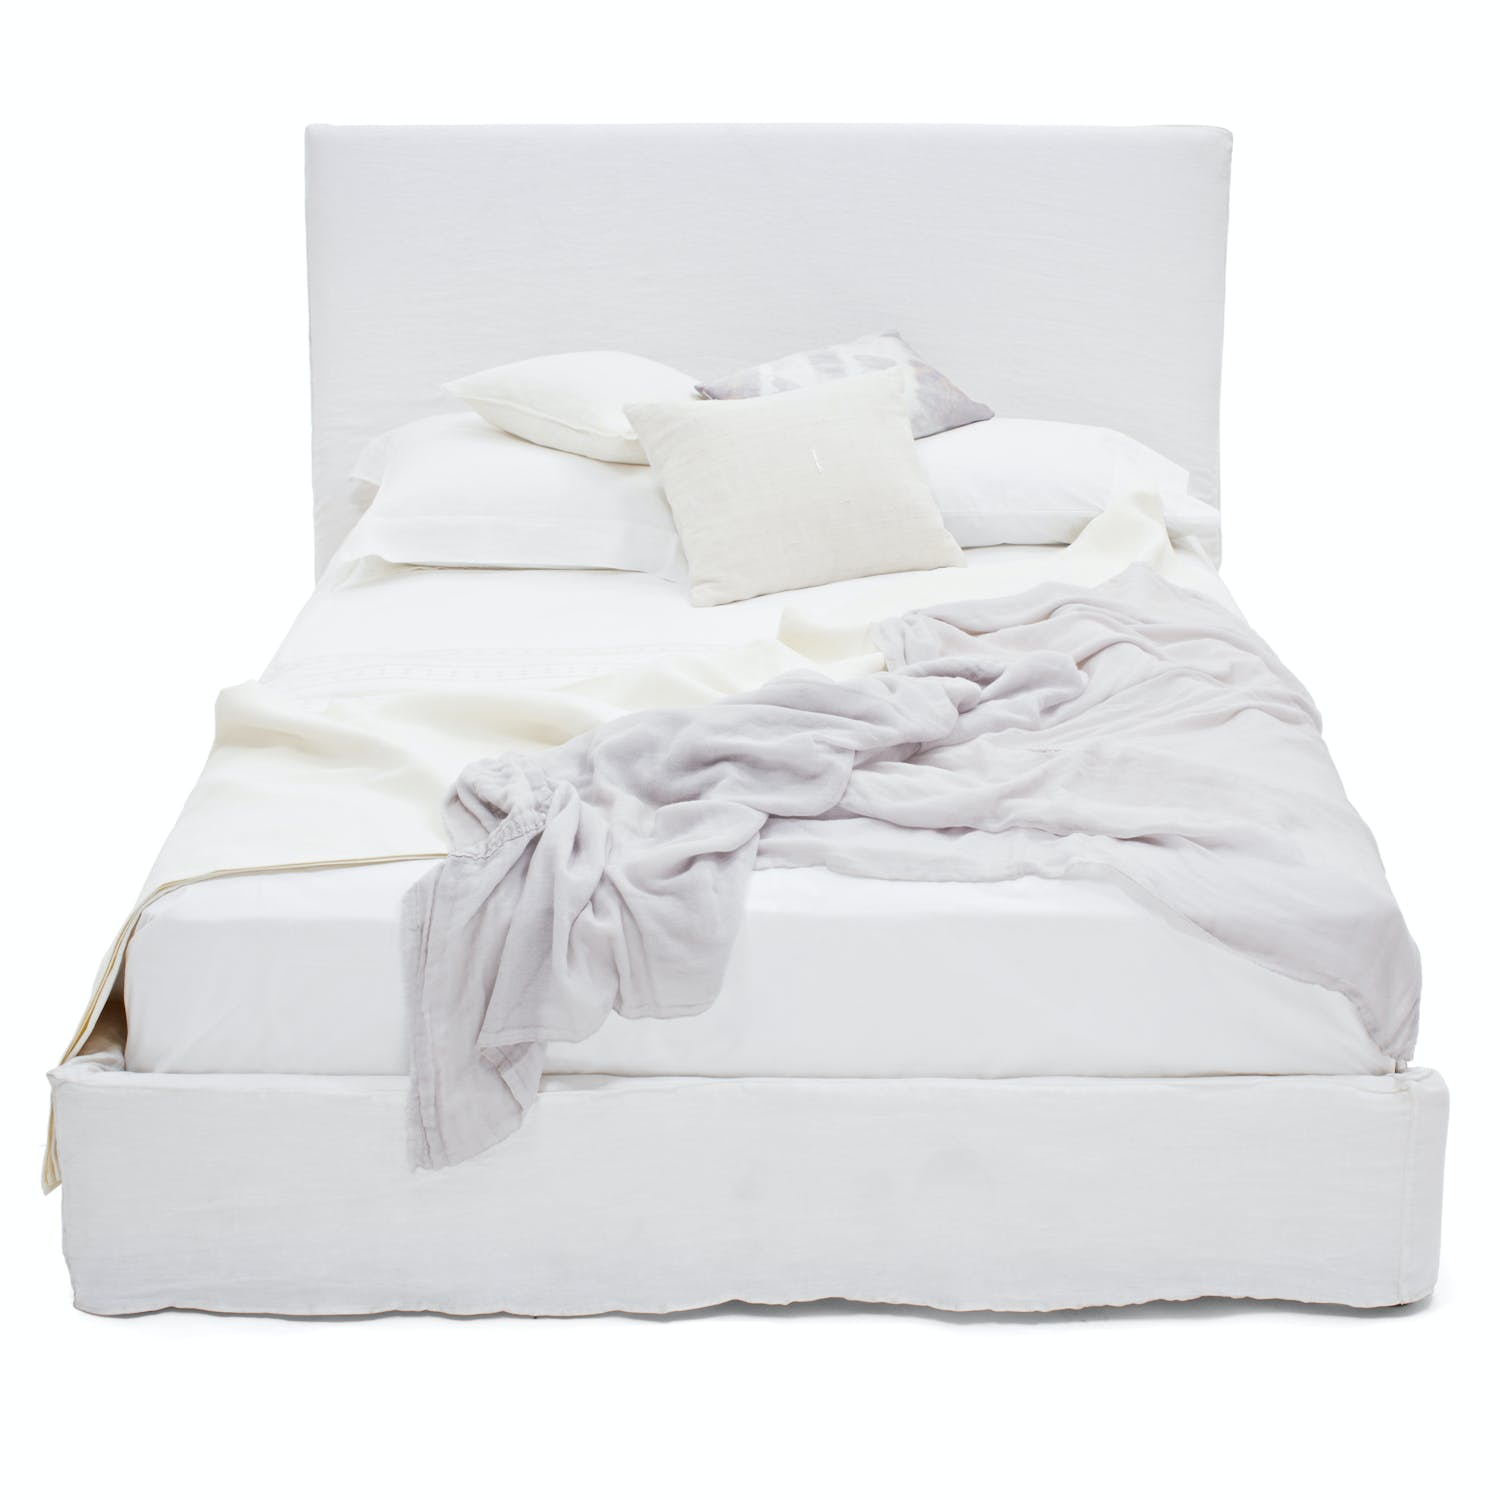 Product Image - ABC Pure by Cisco Light Bed